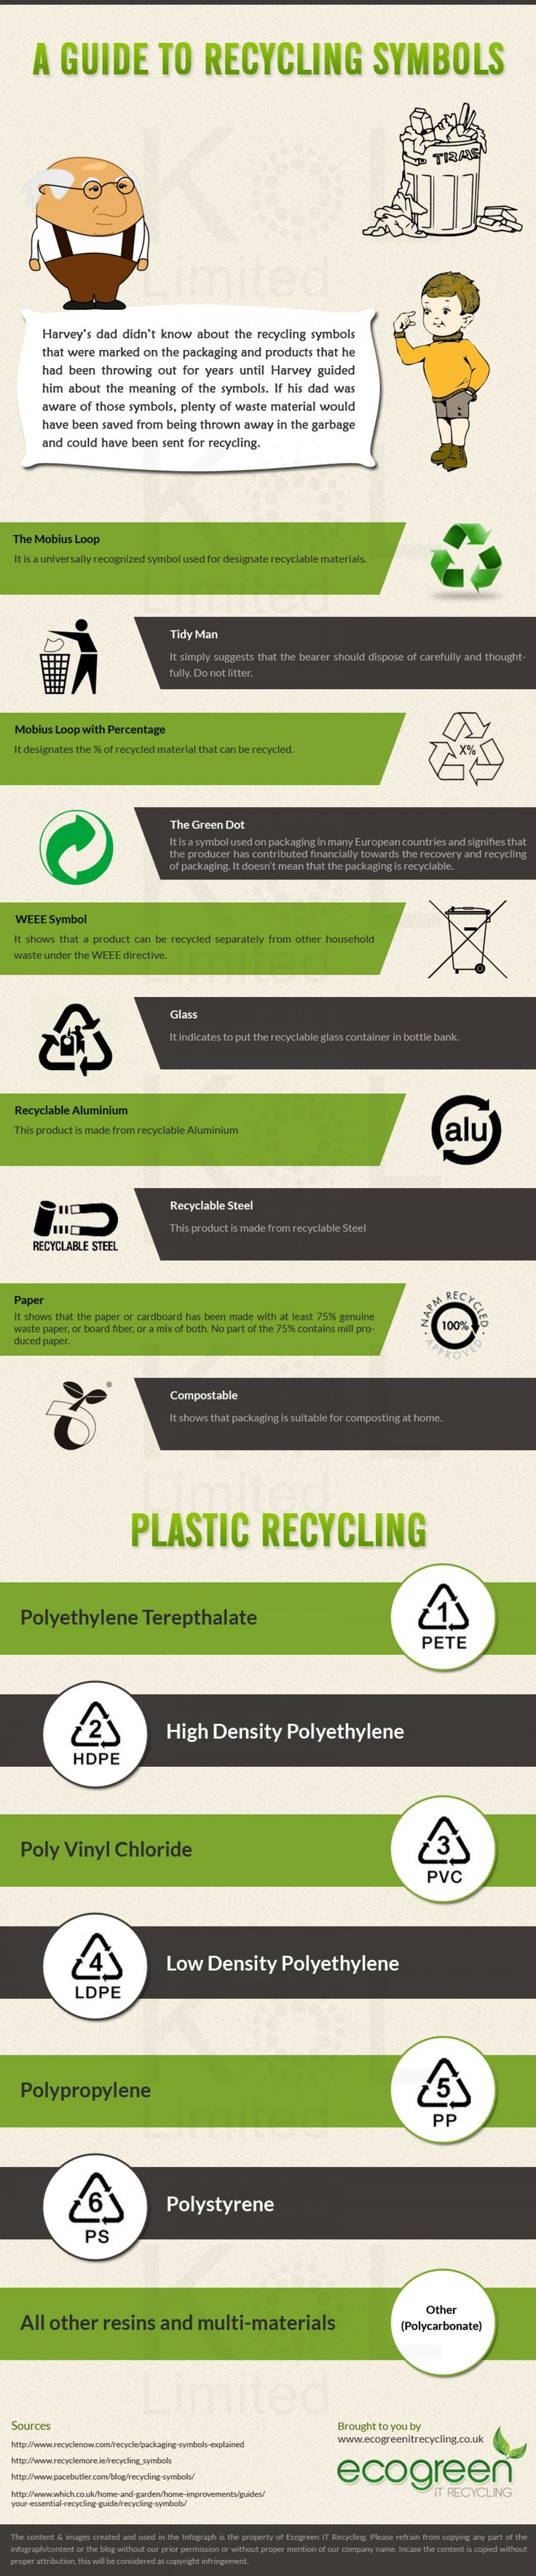 A Guide to Recycling Symbols #Infographic #recycle #sustainability http://calgary.isgreen.ca/